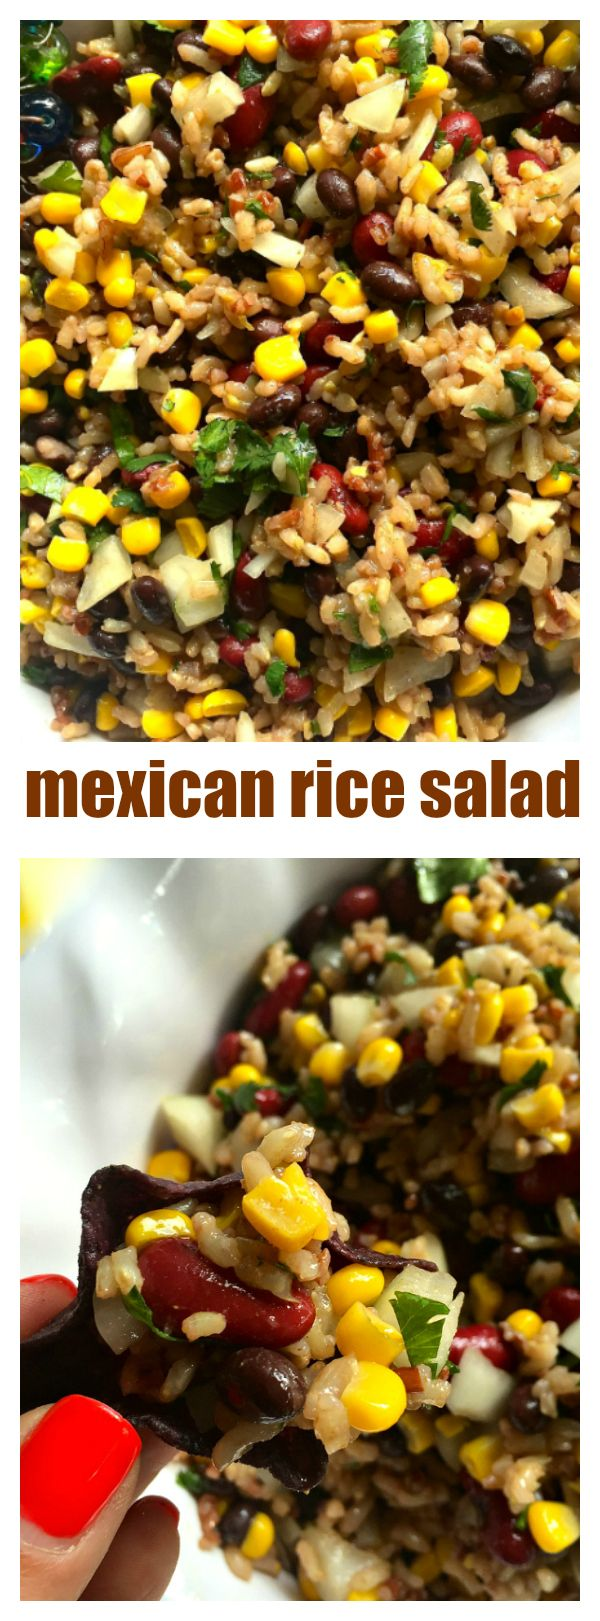 Mexican Rice Salad - Reluctant Entertainer